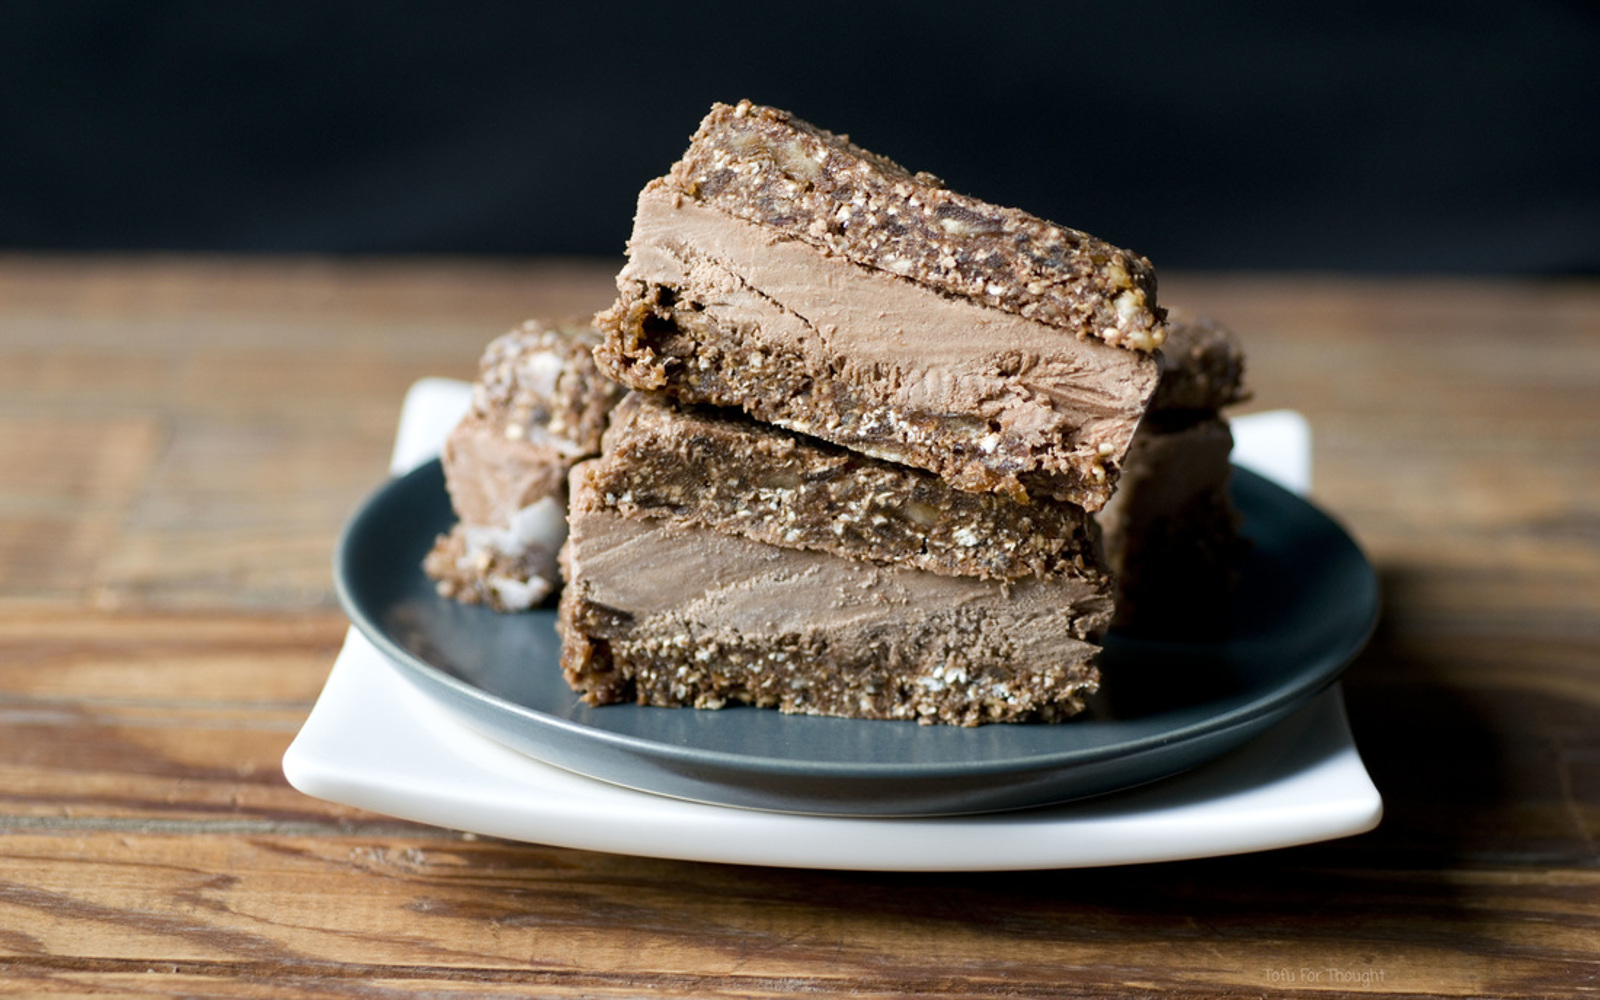 Raw Chocolate Ice Cream Sandwiches